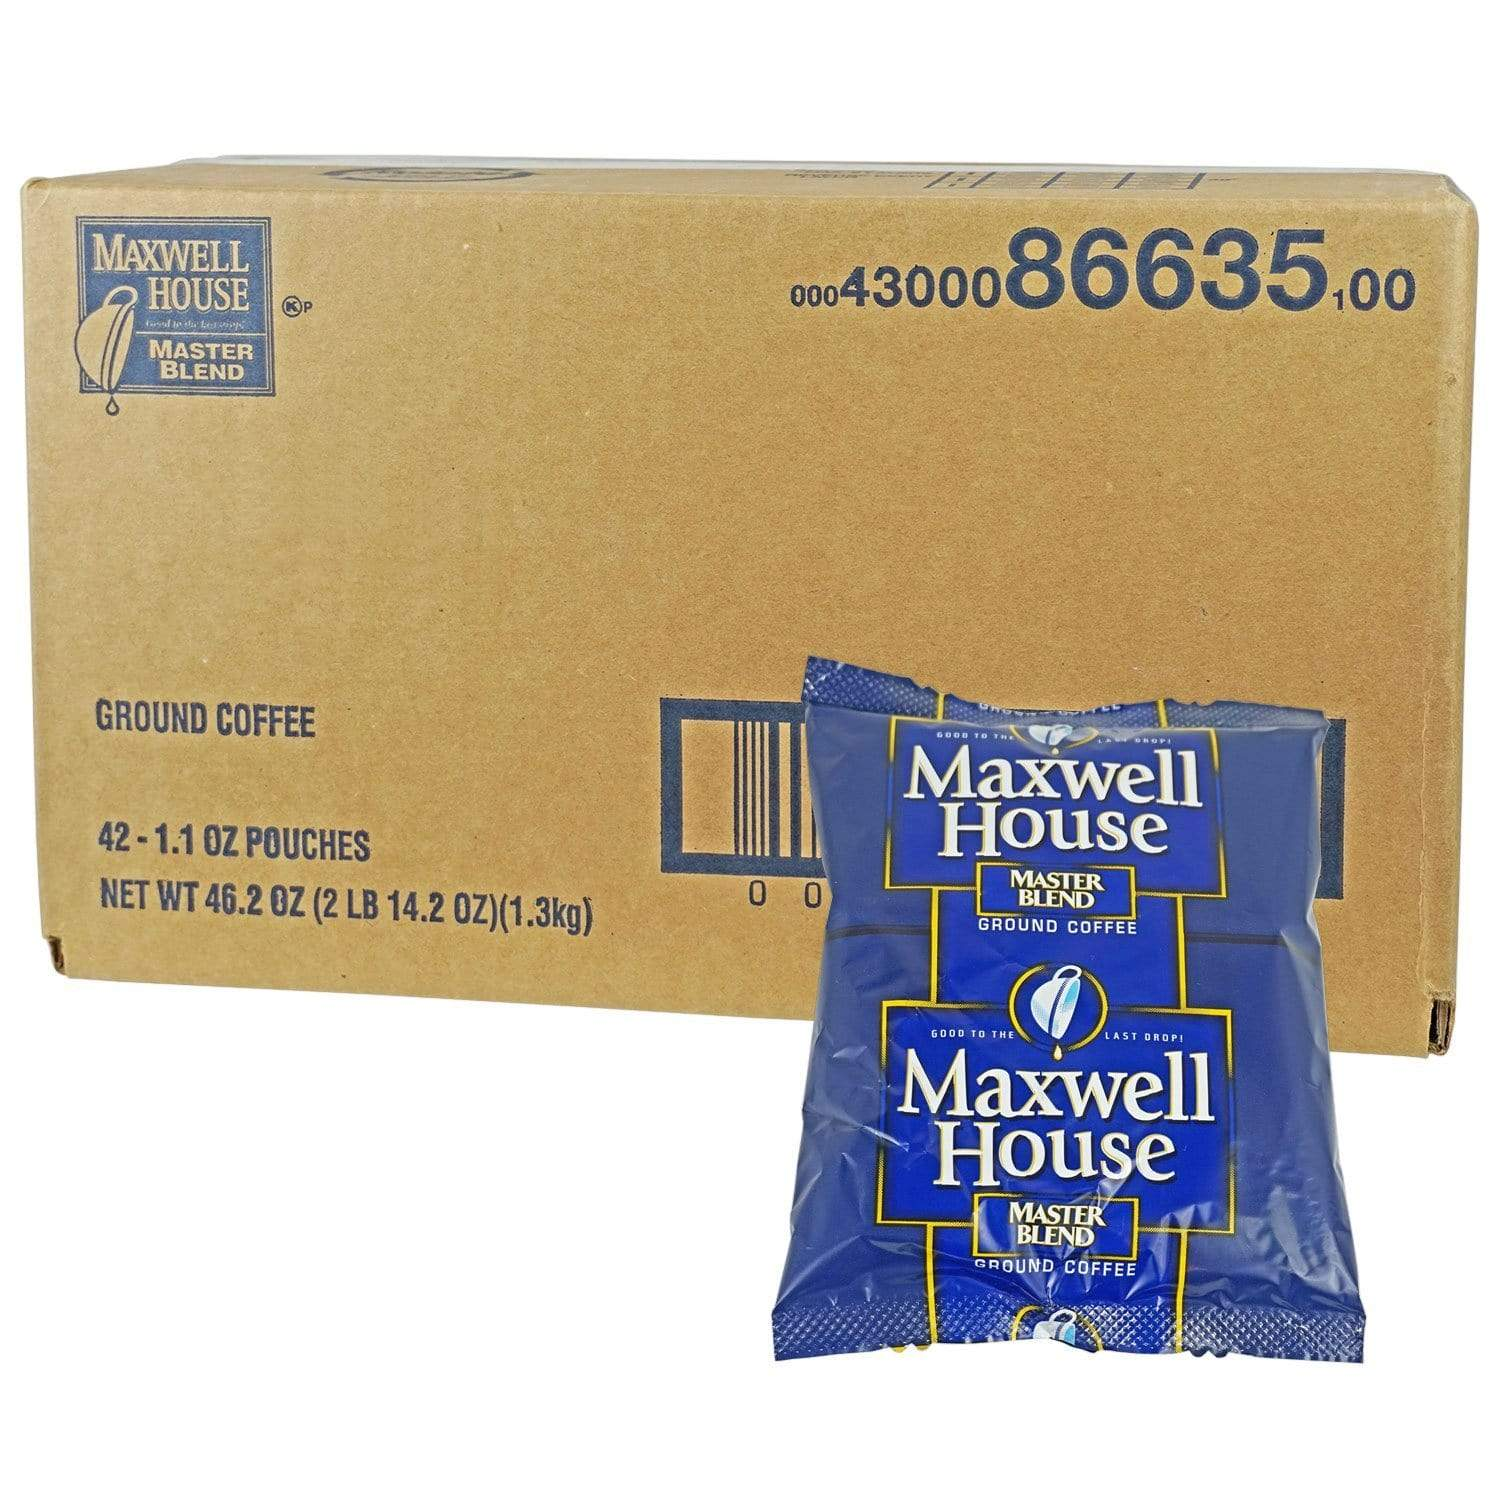 Maxwell House Master Blend Packs 42 Count - 1.1 oz. from Vistar